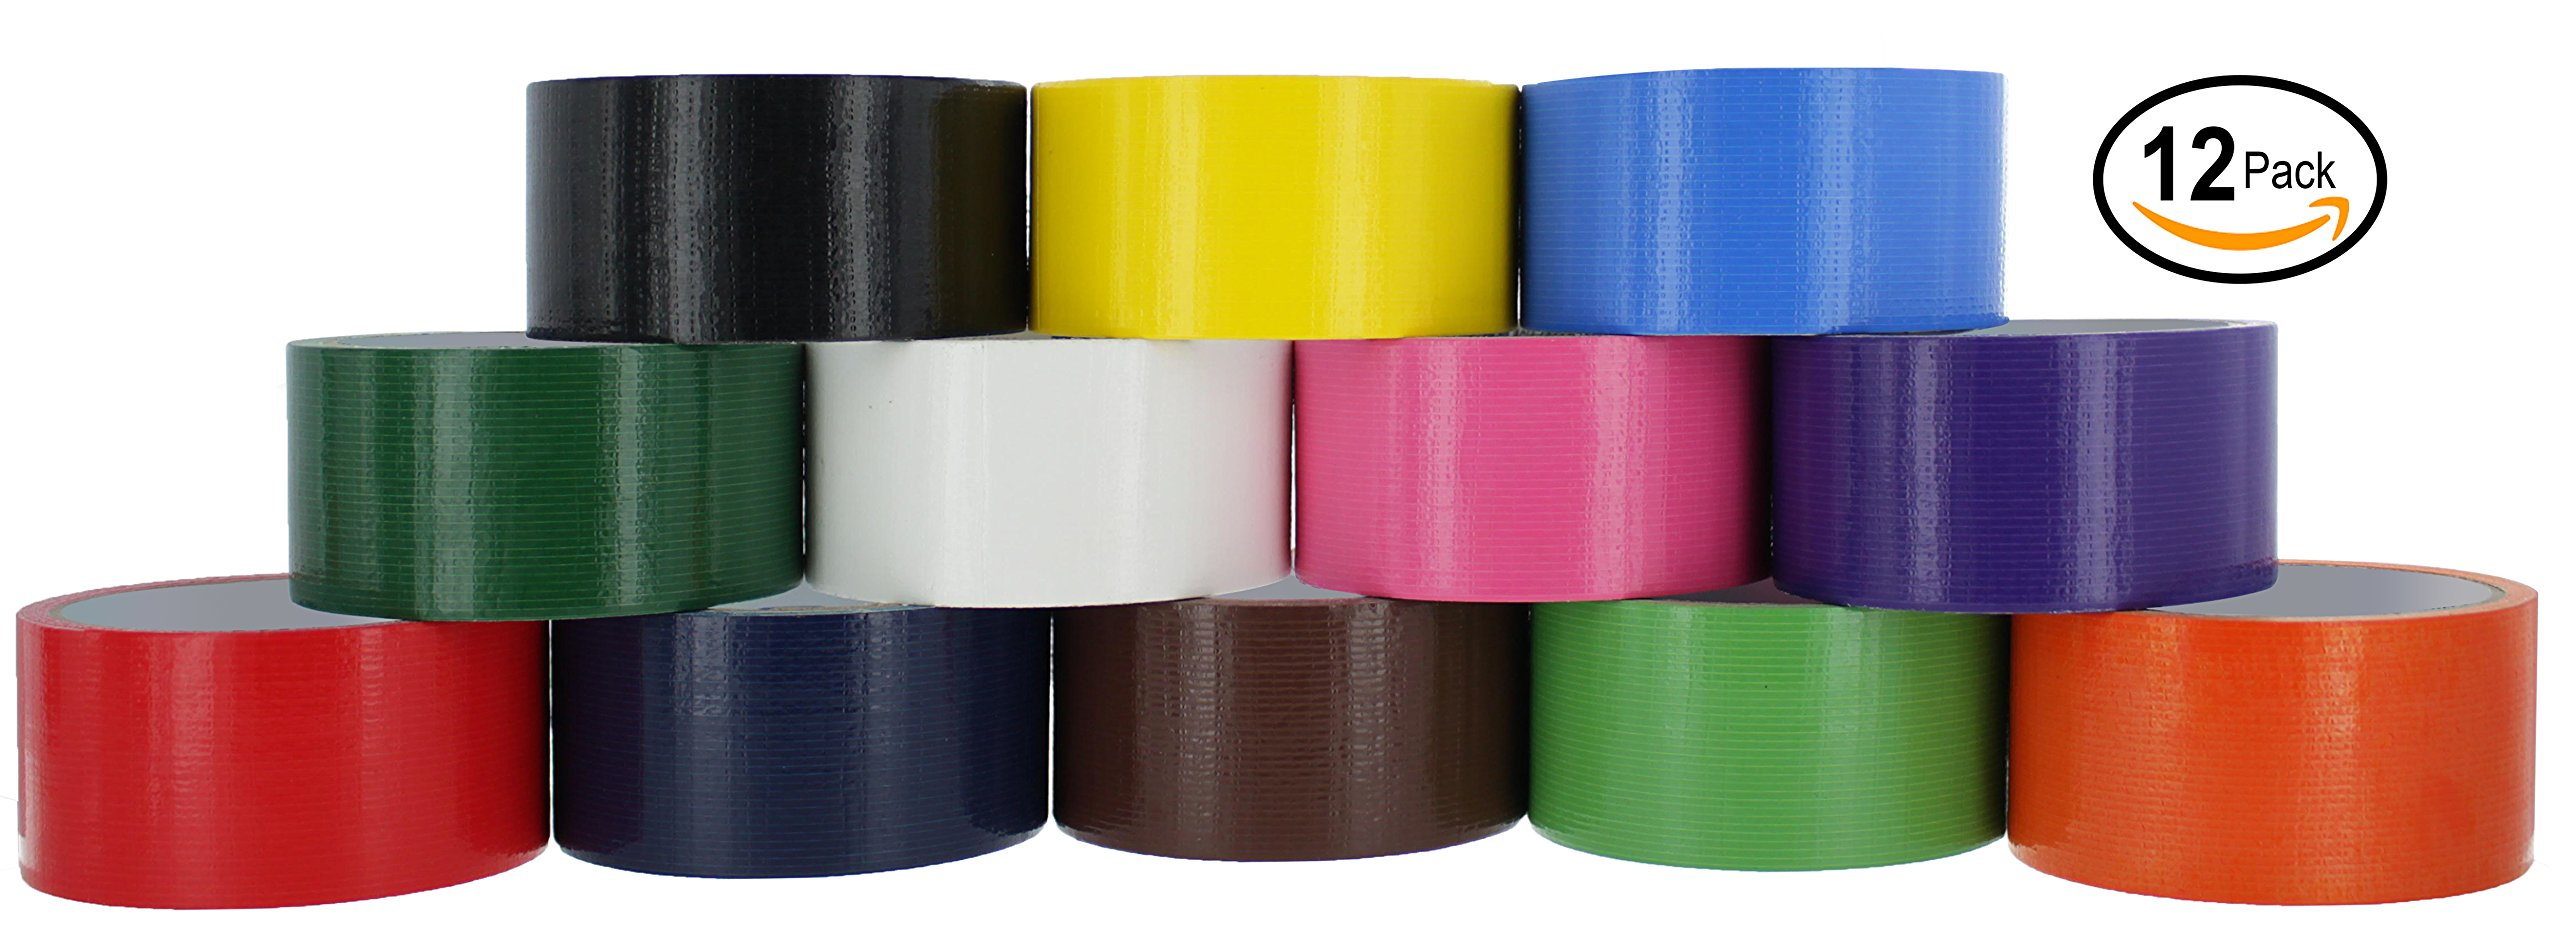 Ram-Pro Colored & Fluorescent Styles Heavy-Duty Duct Tape | Assorted Colors Pack of 12 Rolls, 1.88-inch x 10 Yard.